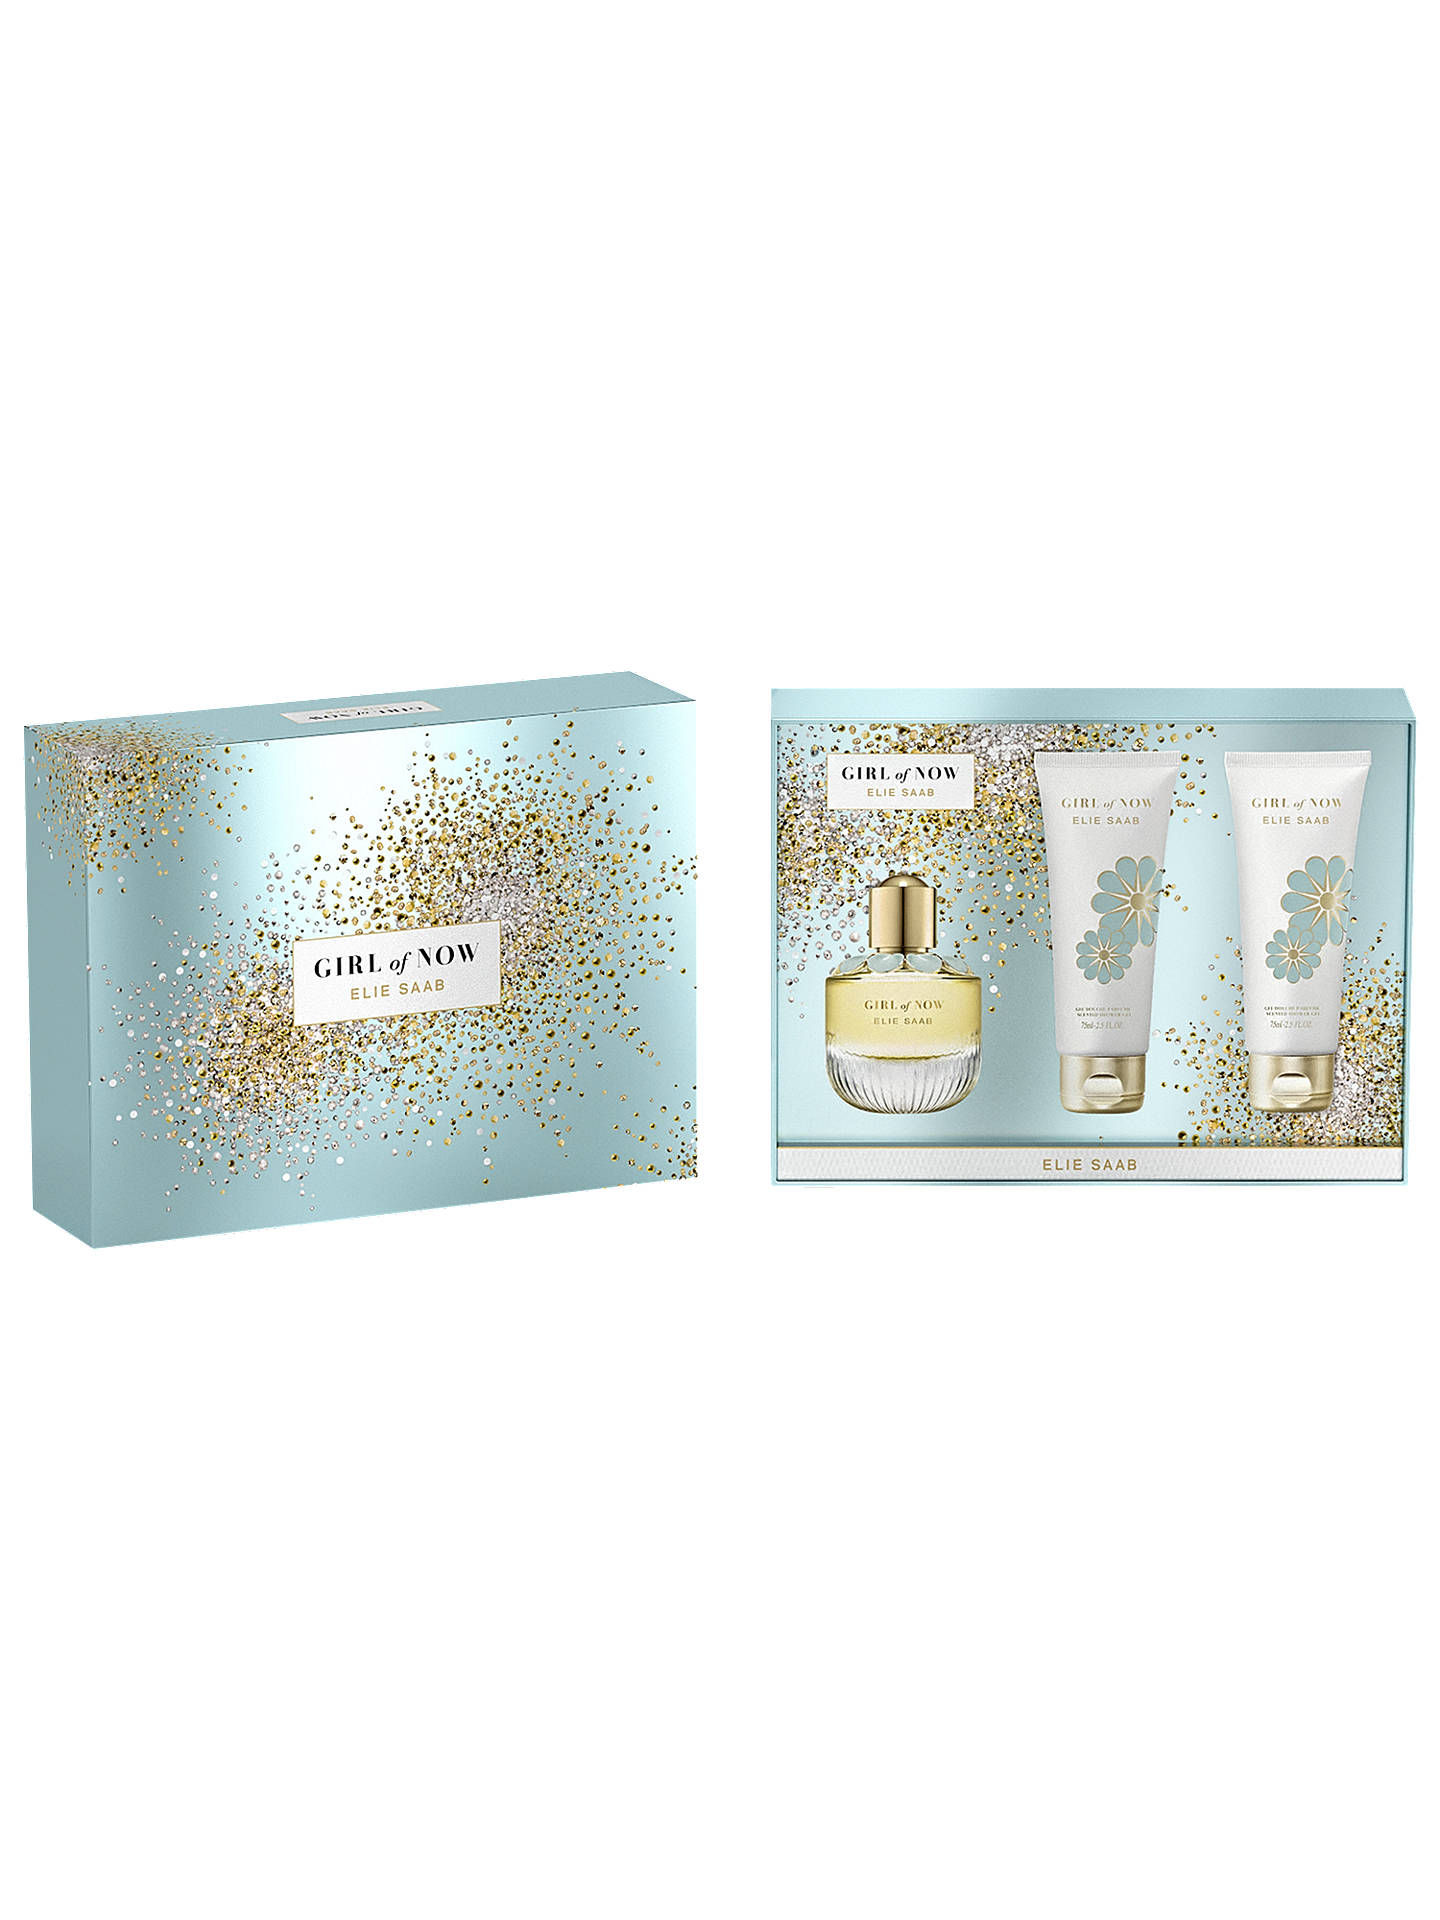 BuyElie Saab Girl of Now 50ml Eau de Parfum Gift Set Online at johnlewis.com